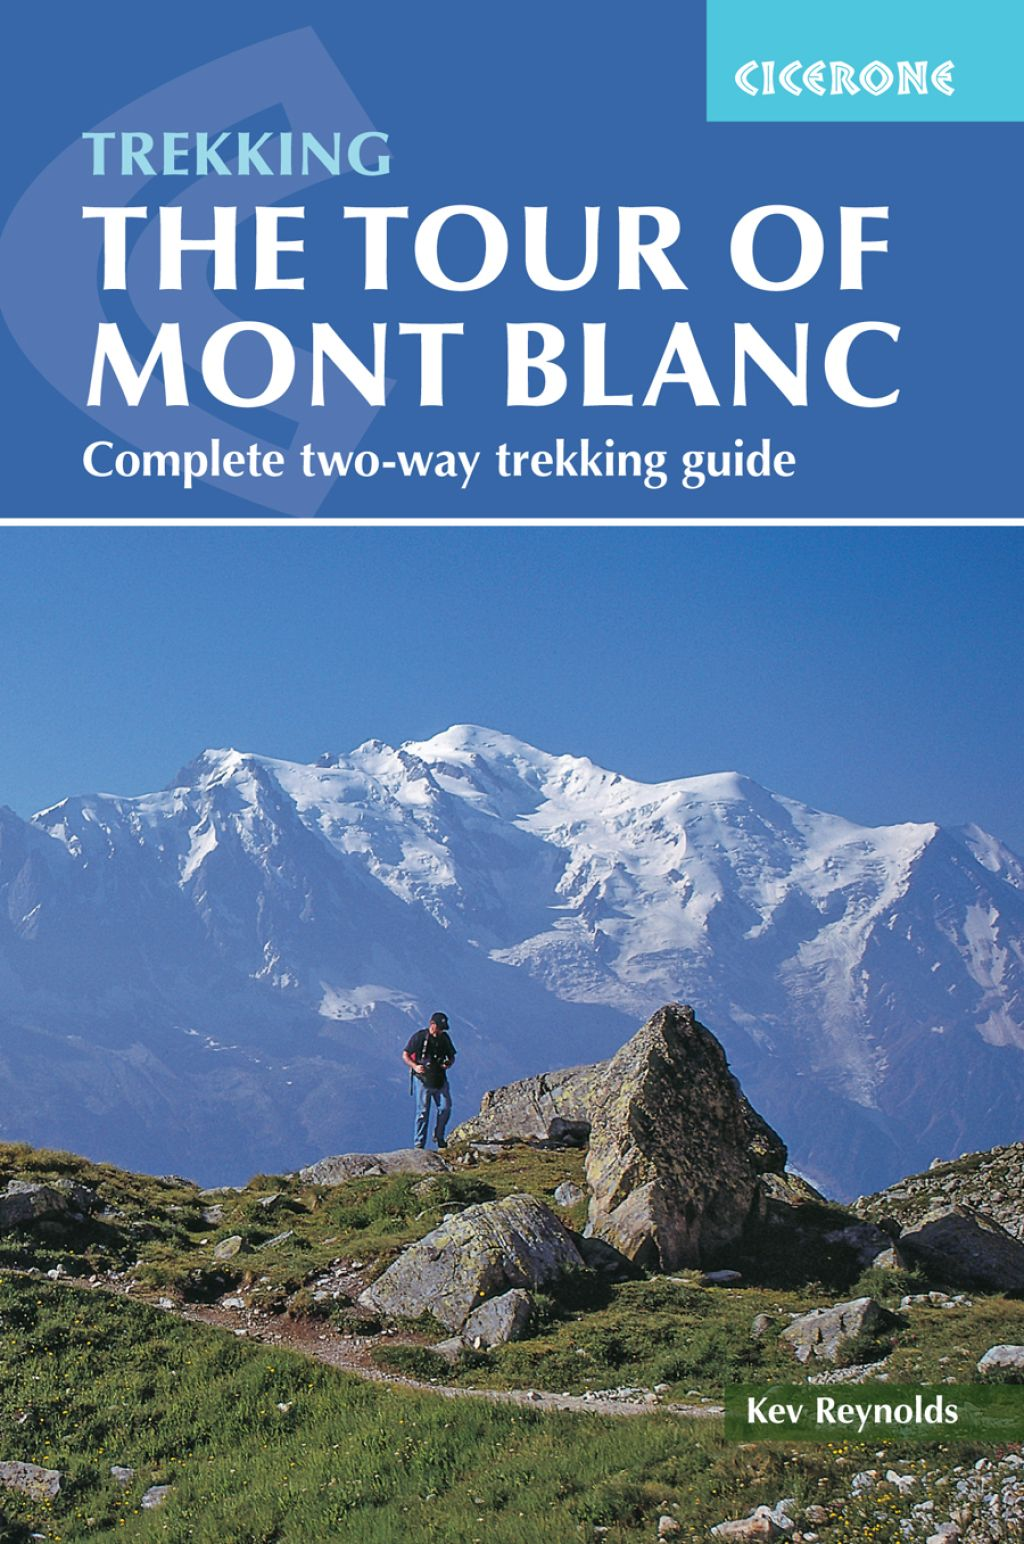 Off to the Alps - More adventures on the Tour de Mont